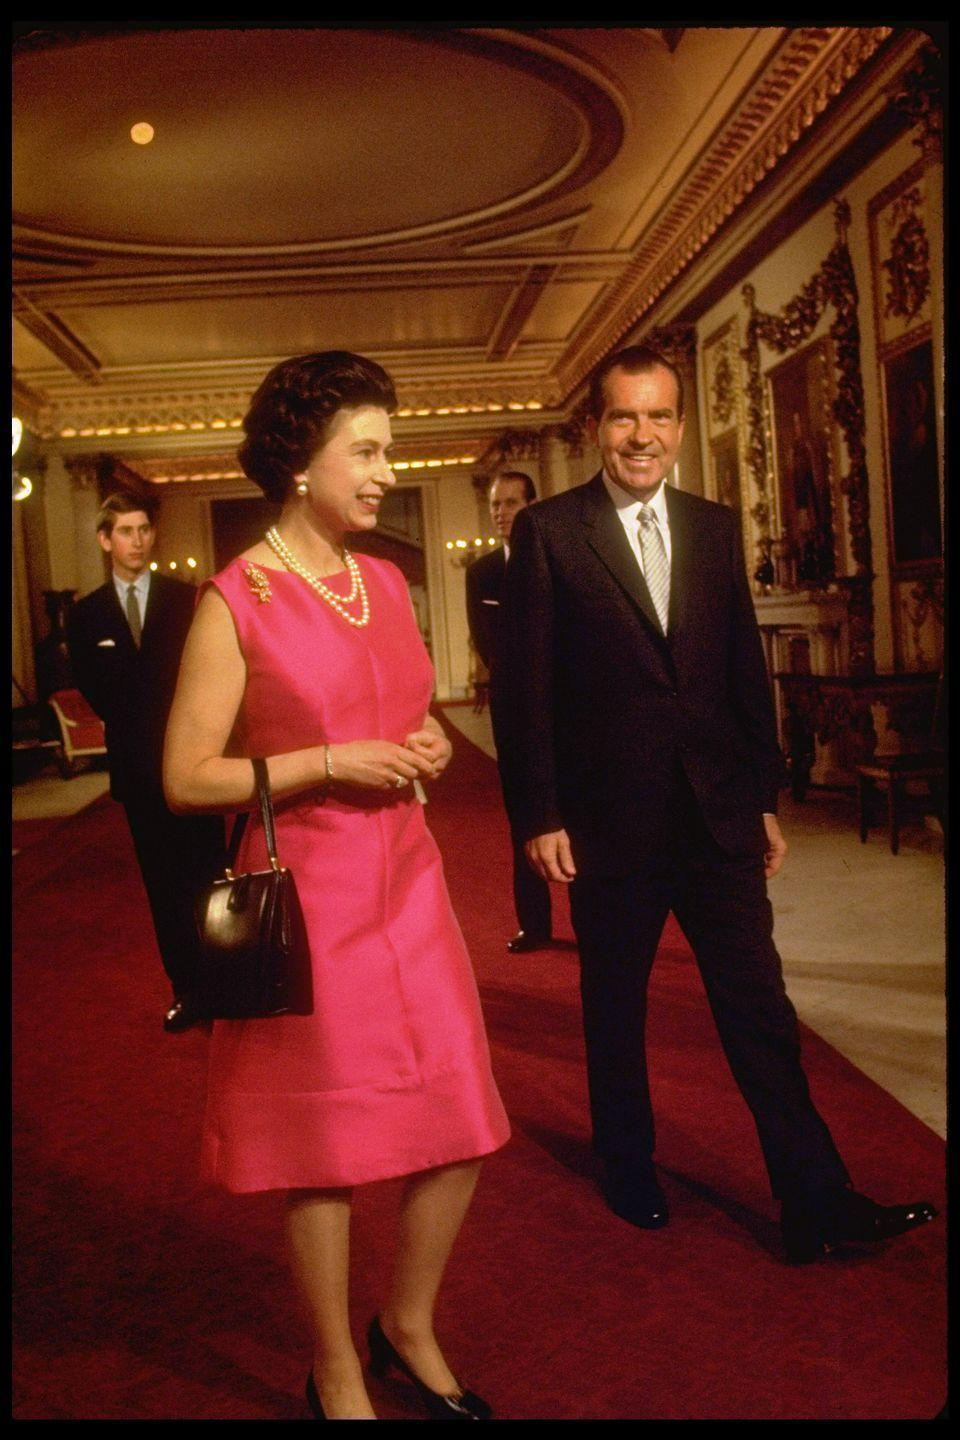 <p>The Queen and Nixon walking through the corridors of Buckingham Palace. In the background you can see a young Prince Charles. </p>